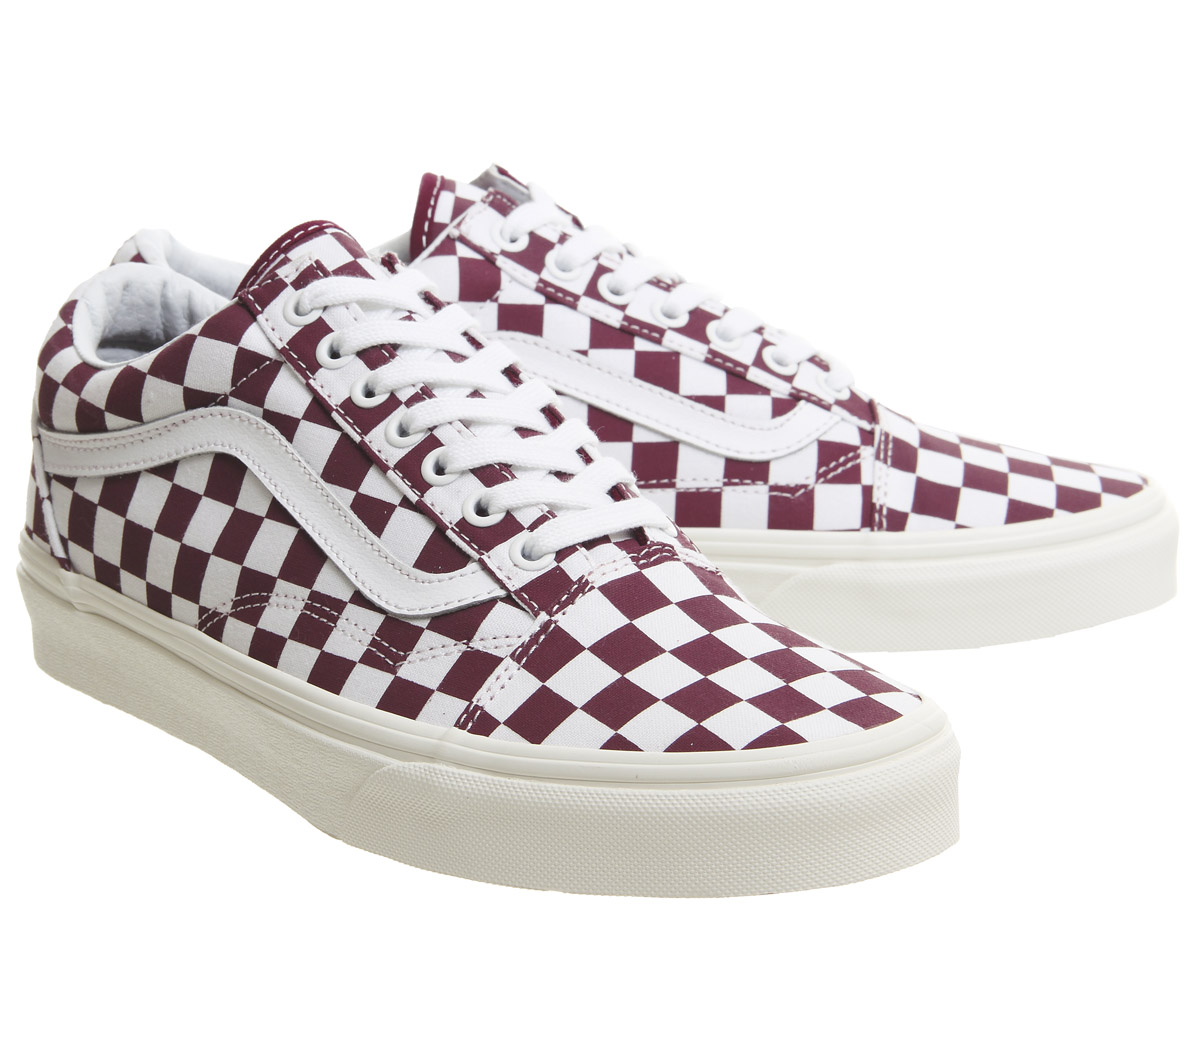 Mens Vans Old Skool Trainers Port Royale Marshmellow Checkerboard ... c38377f61